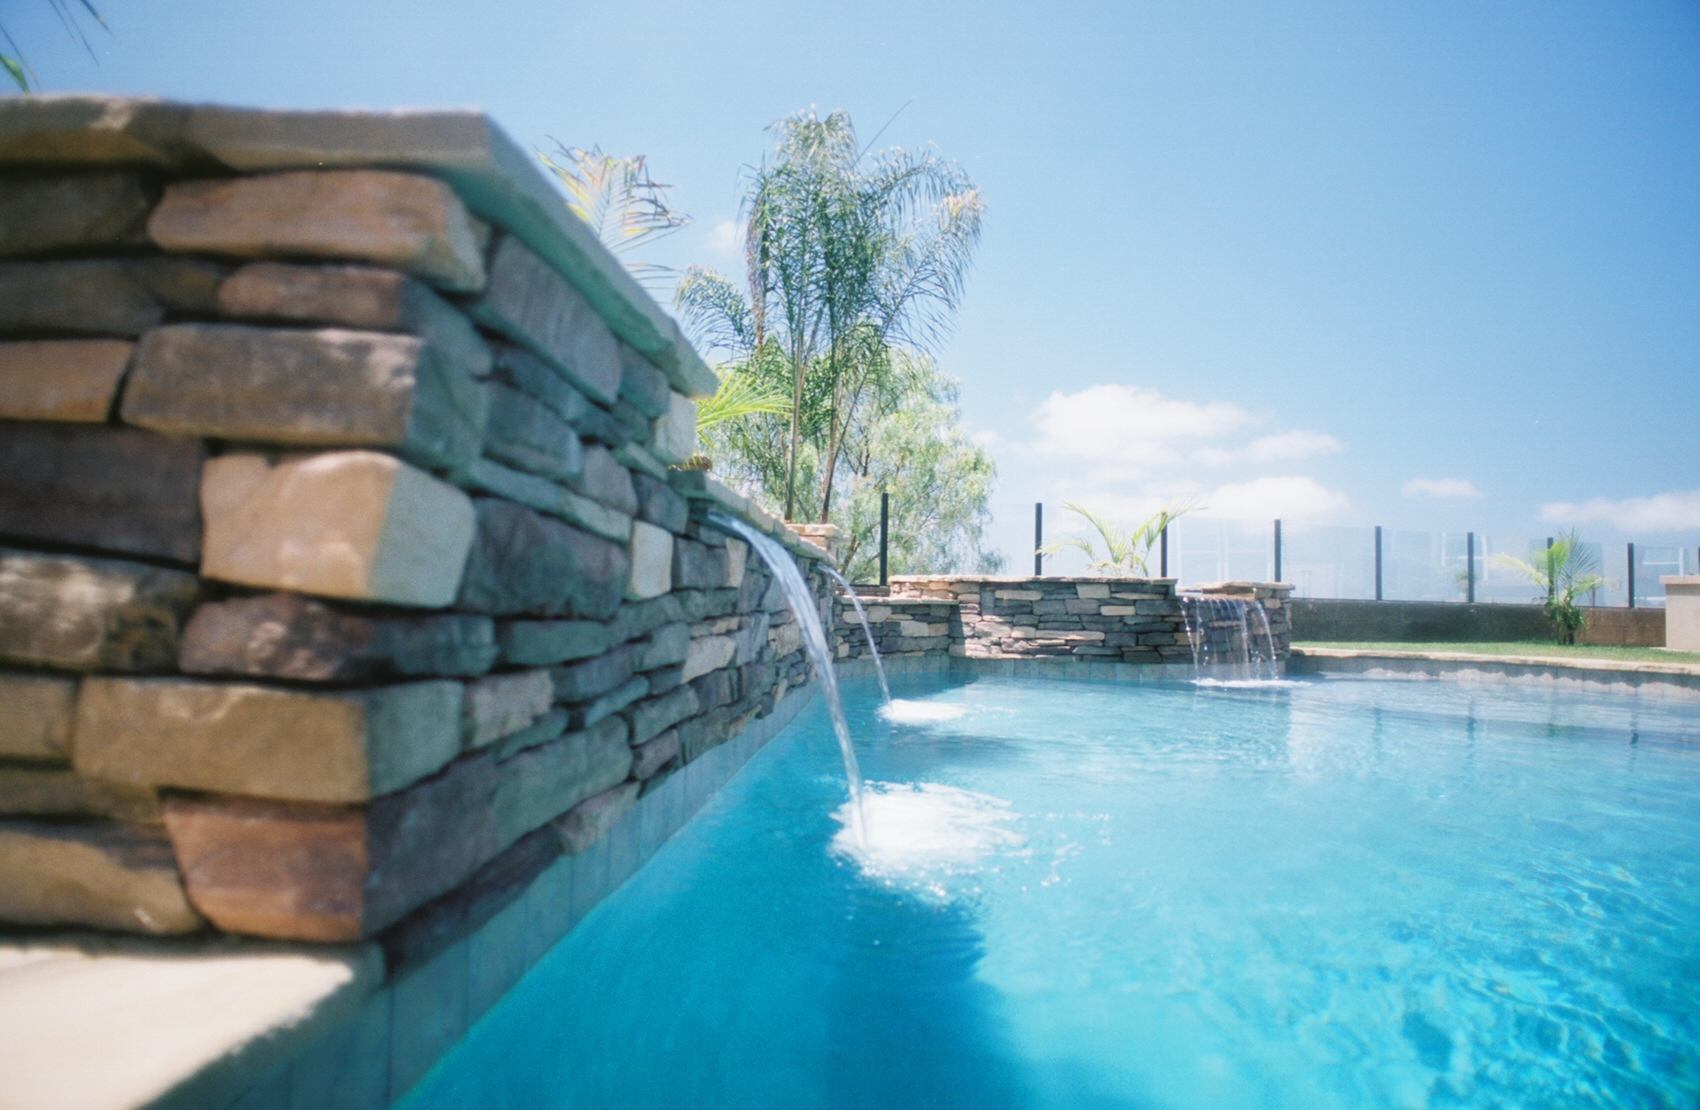 Lakeside Amp San Diego Ca Swimming Pool Water Features